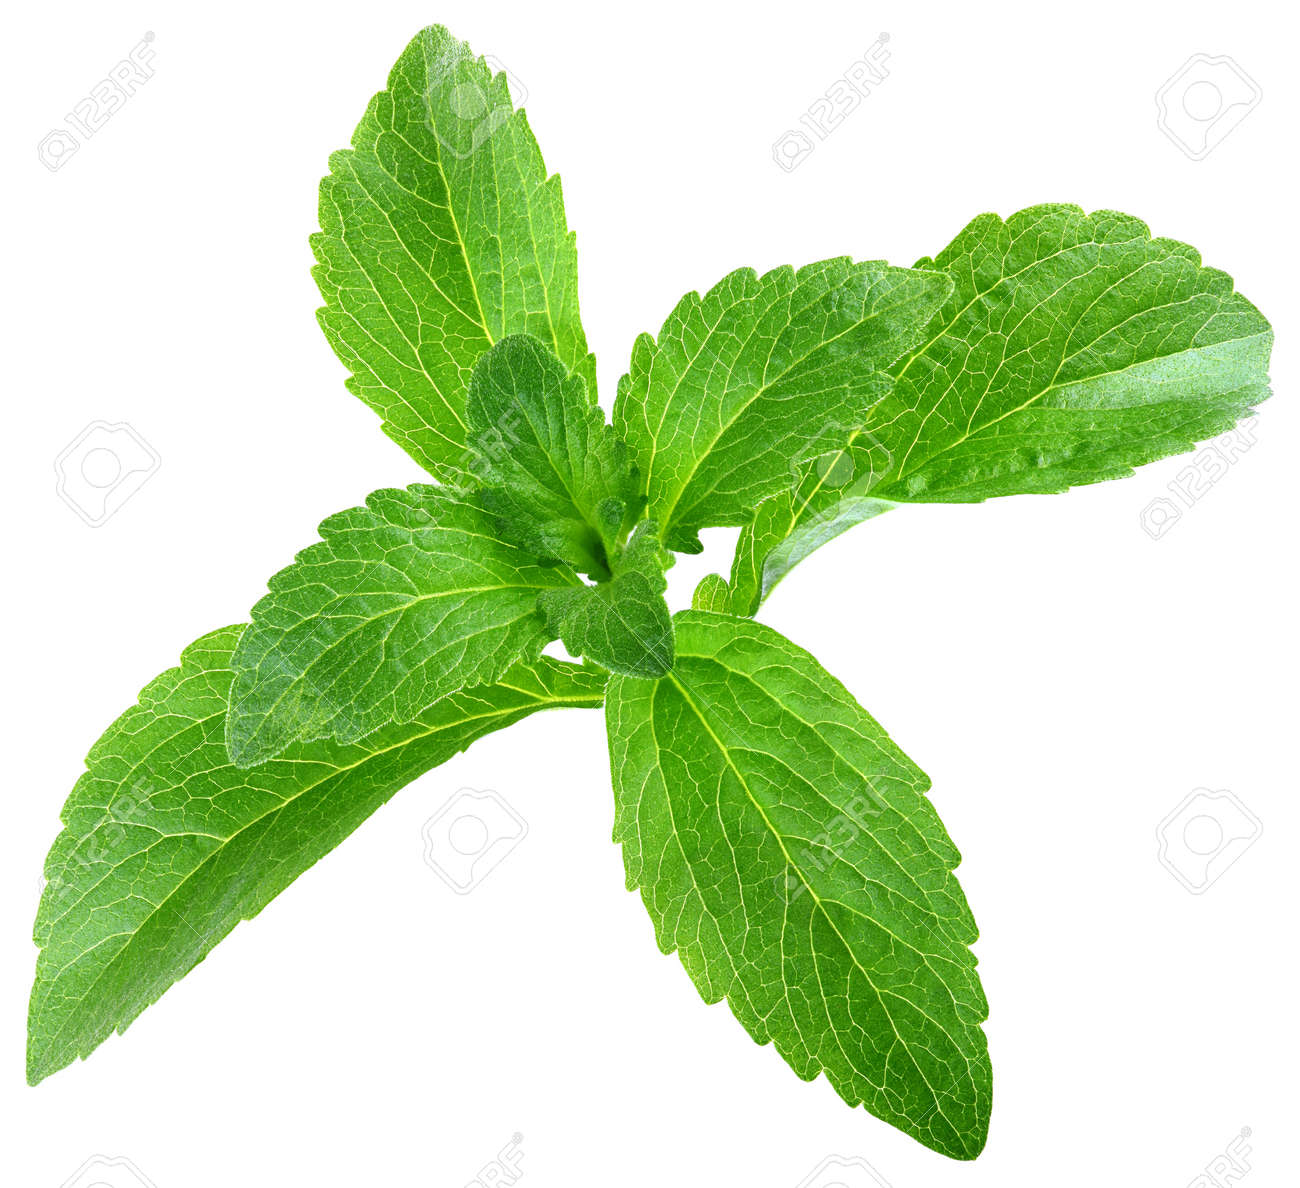 Stevia Rebaudiana Leafs Isolated on White Background Standard-Bild - 14062552